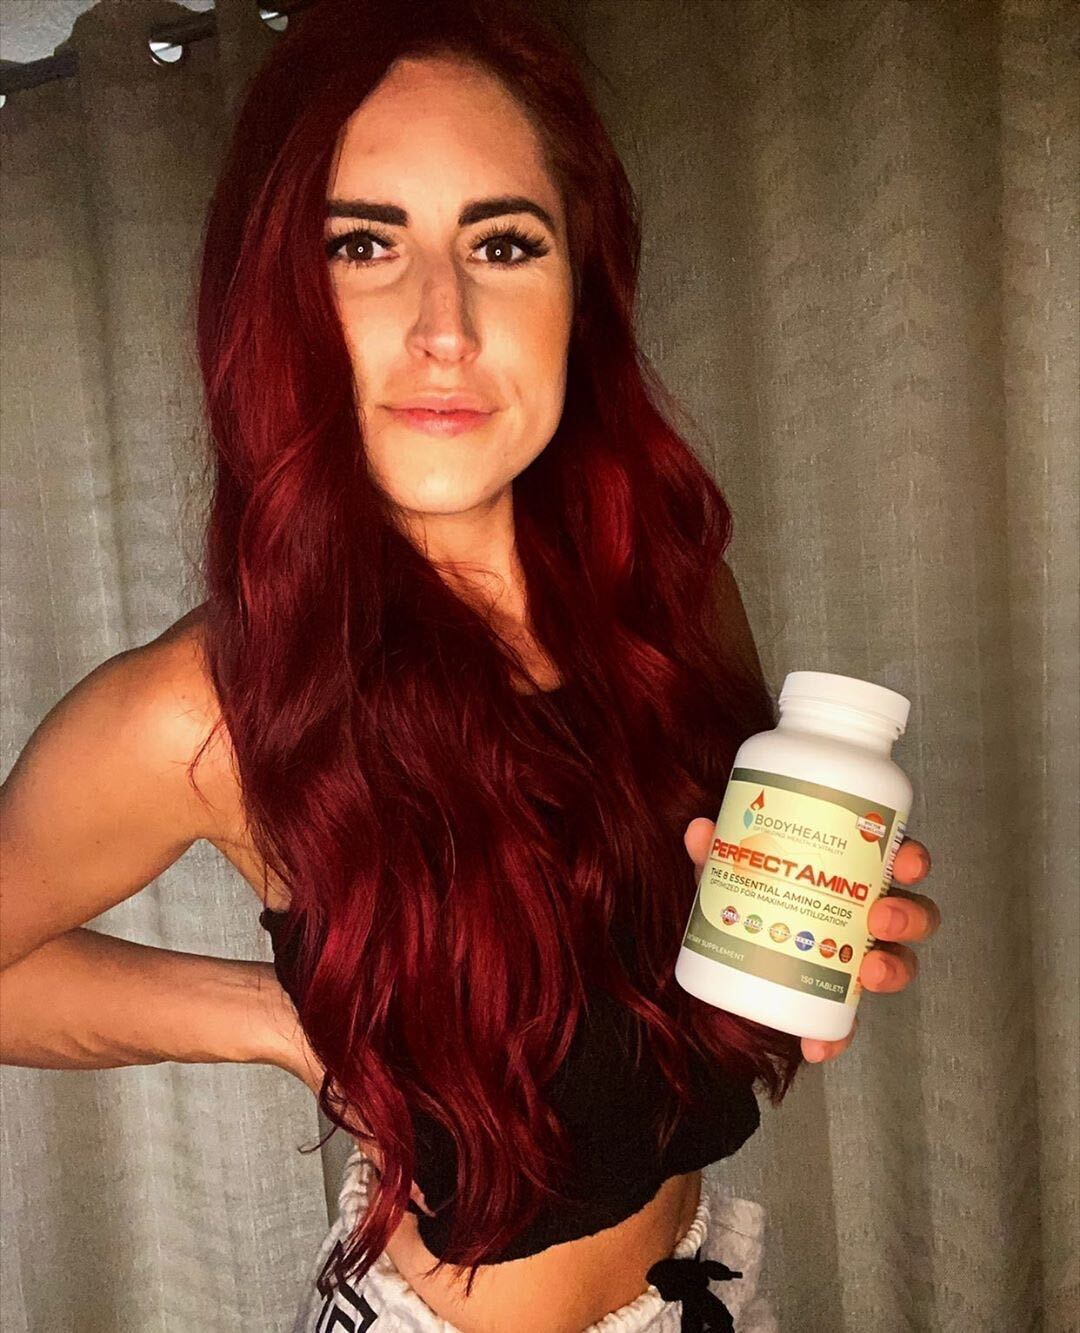 BodyHealth Woman Influencer holding PerfectAmino 150 count bottle of tablets for toned and lean muscle